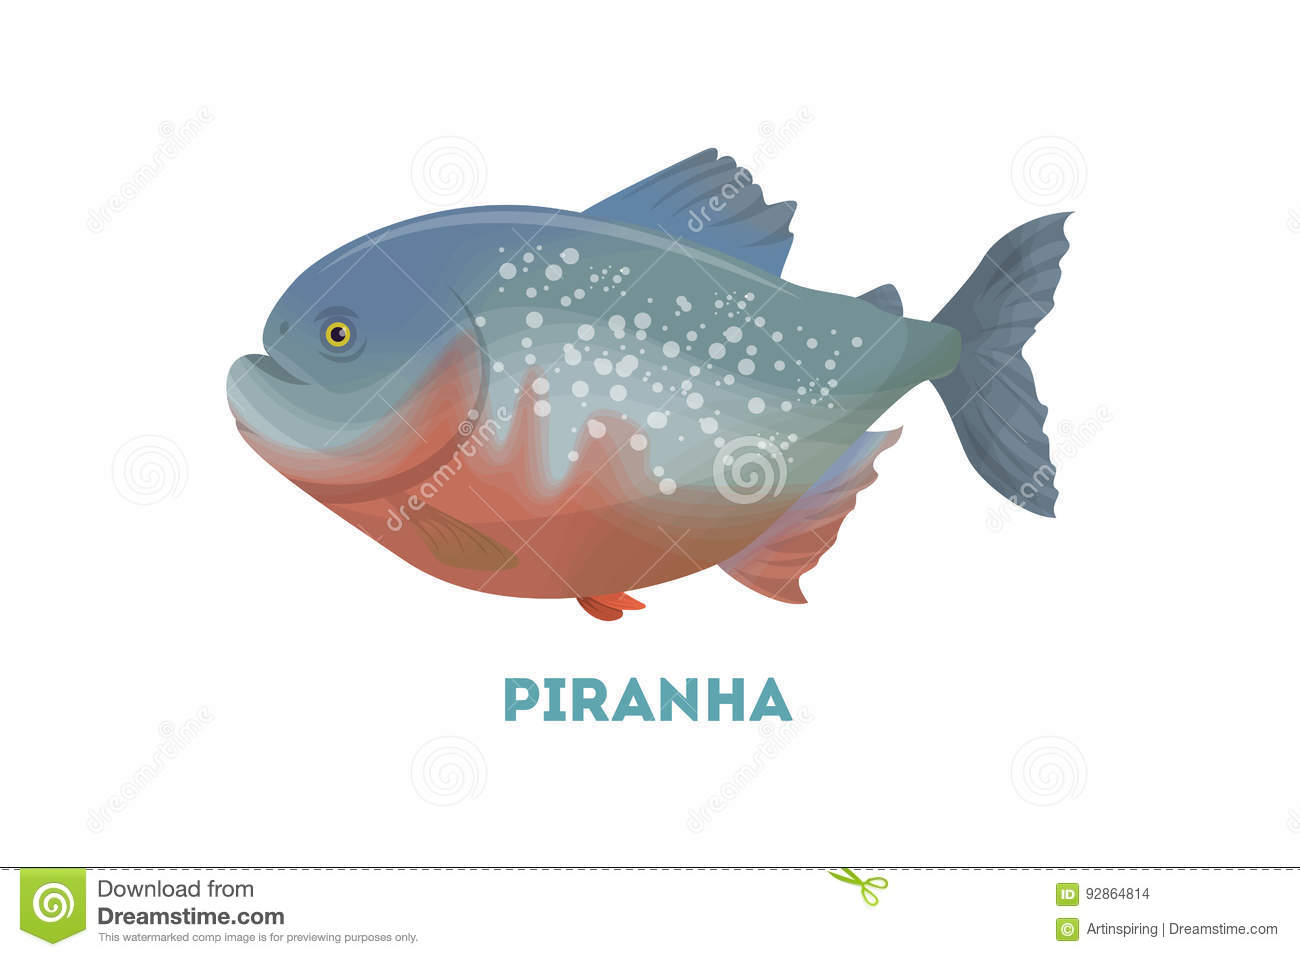 Piranha cartoons illustrations vector stock images for Piranha fish finder